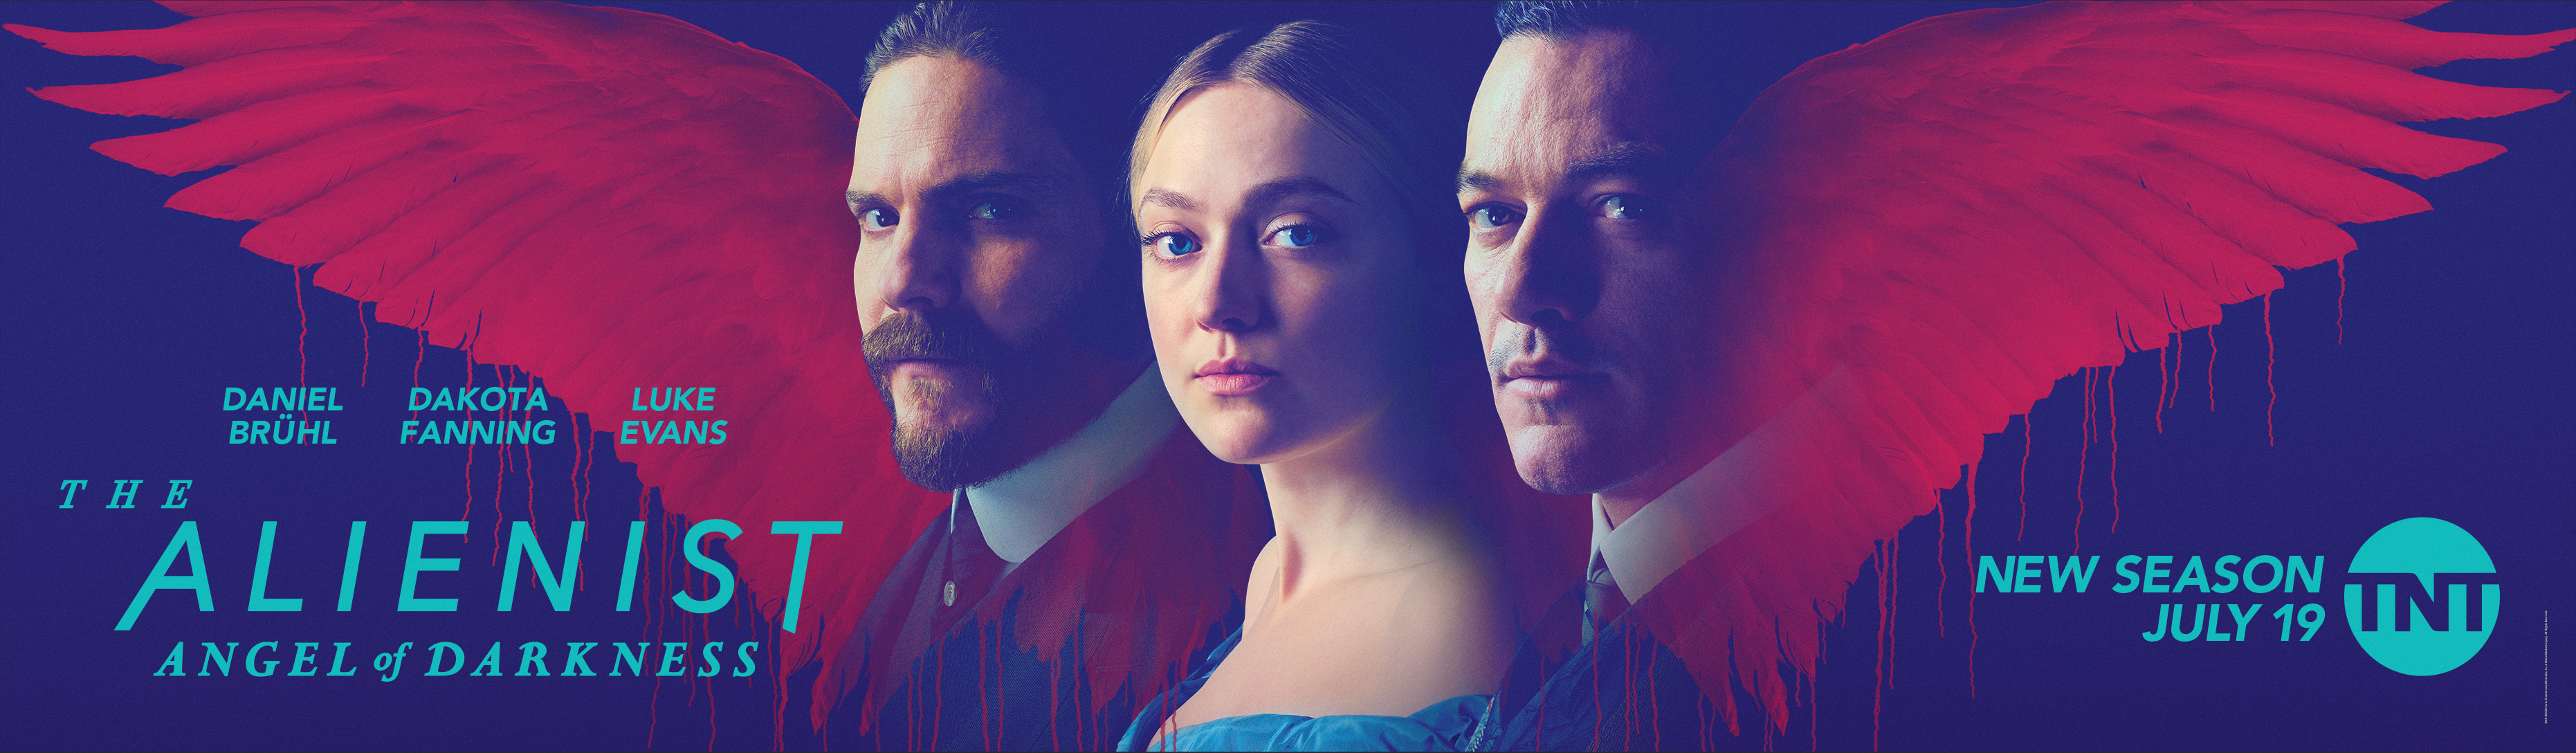 Marc Hom Shoots Poster Art for Second Season of 'The Alienist'